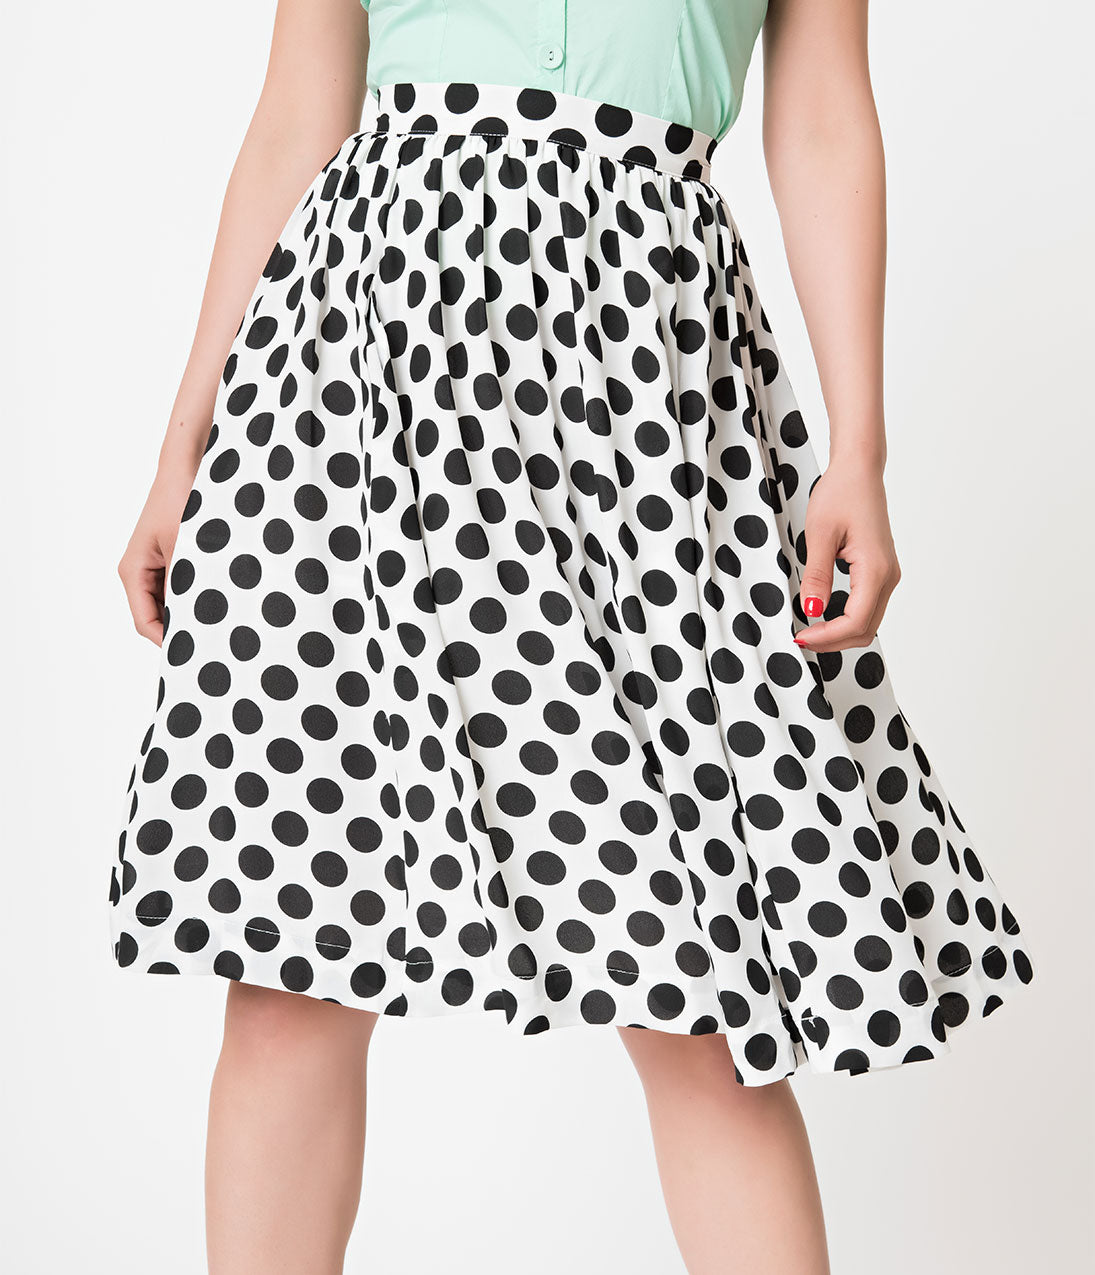 1920s Skirts, Gatsby Skirts, Vintage Pleated Skirts Retro Style White  Black Polka Dot Chiffon Flare Skirt $37.00 AT vintagedancer.com